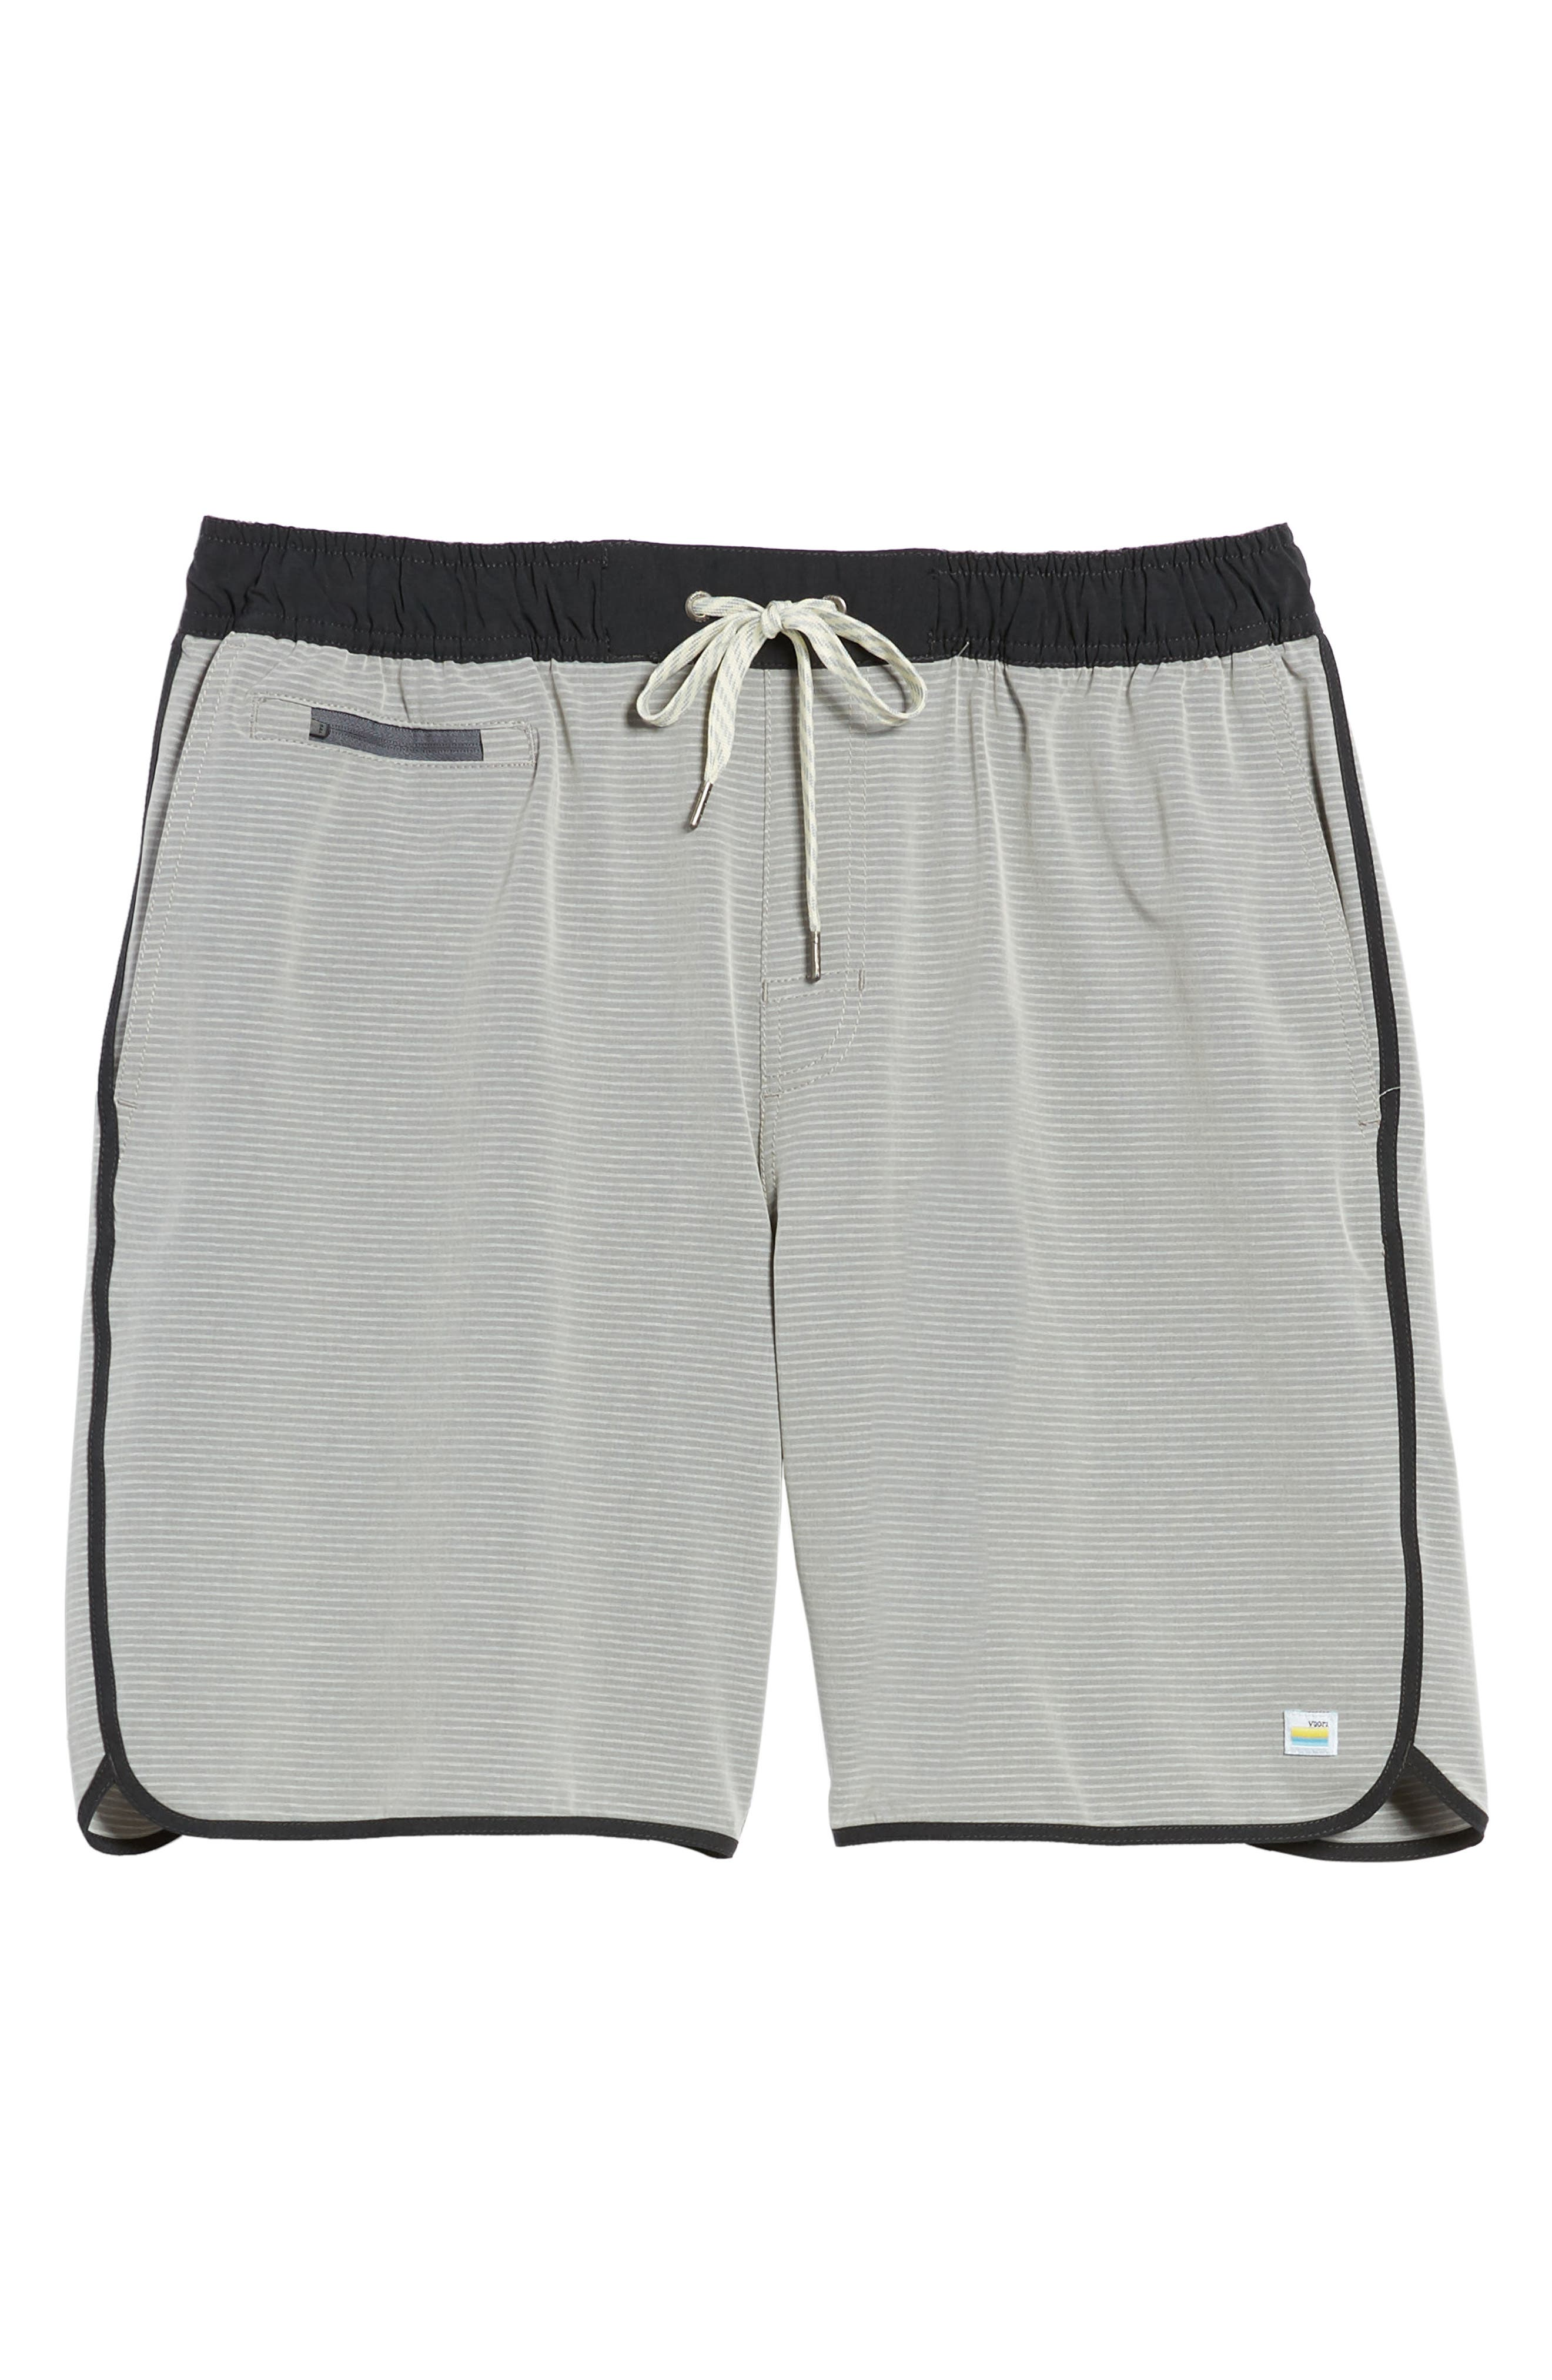 Banks Athletic Shorts,                             Alternate thumbnail 6, color,                             Light Grey Engineered Stripe